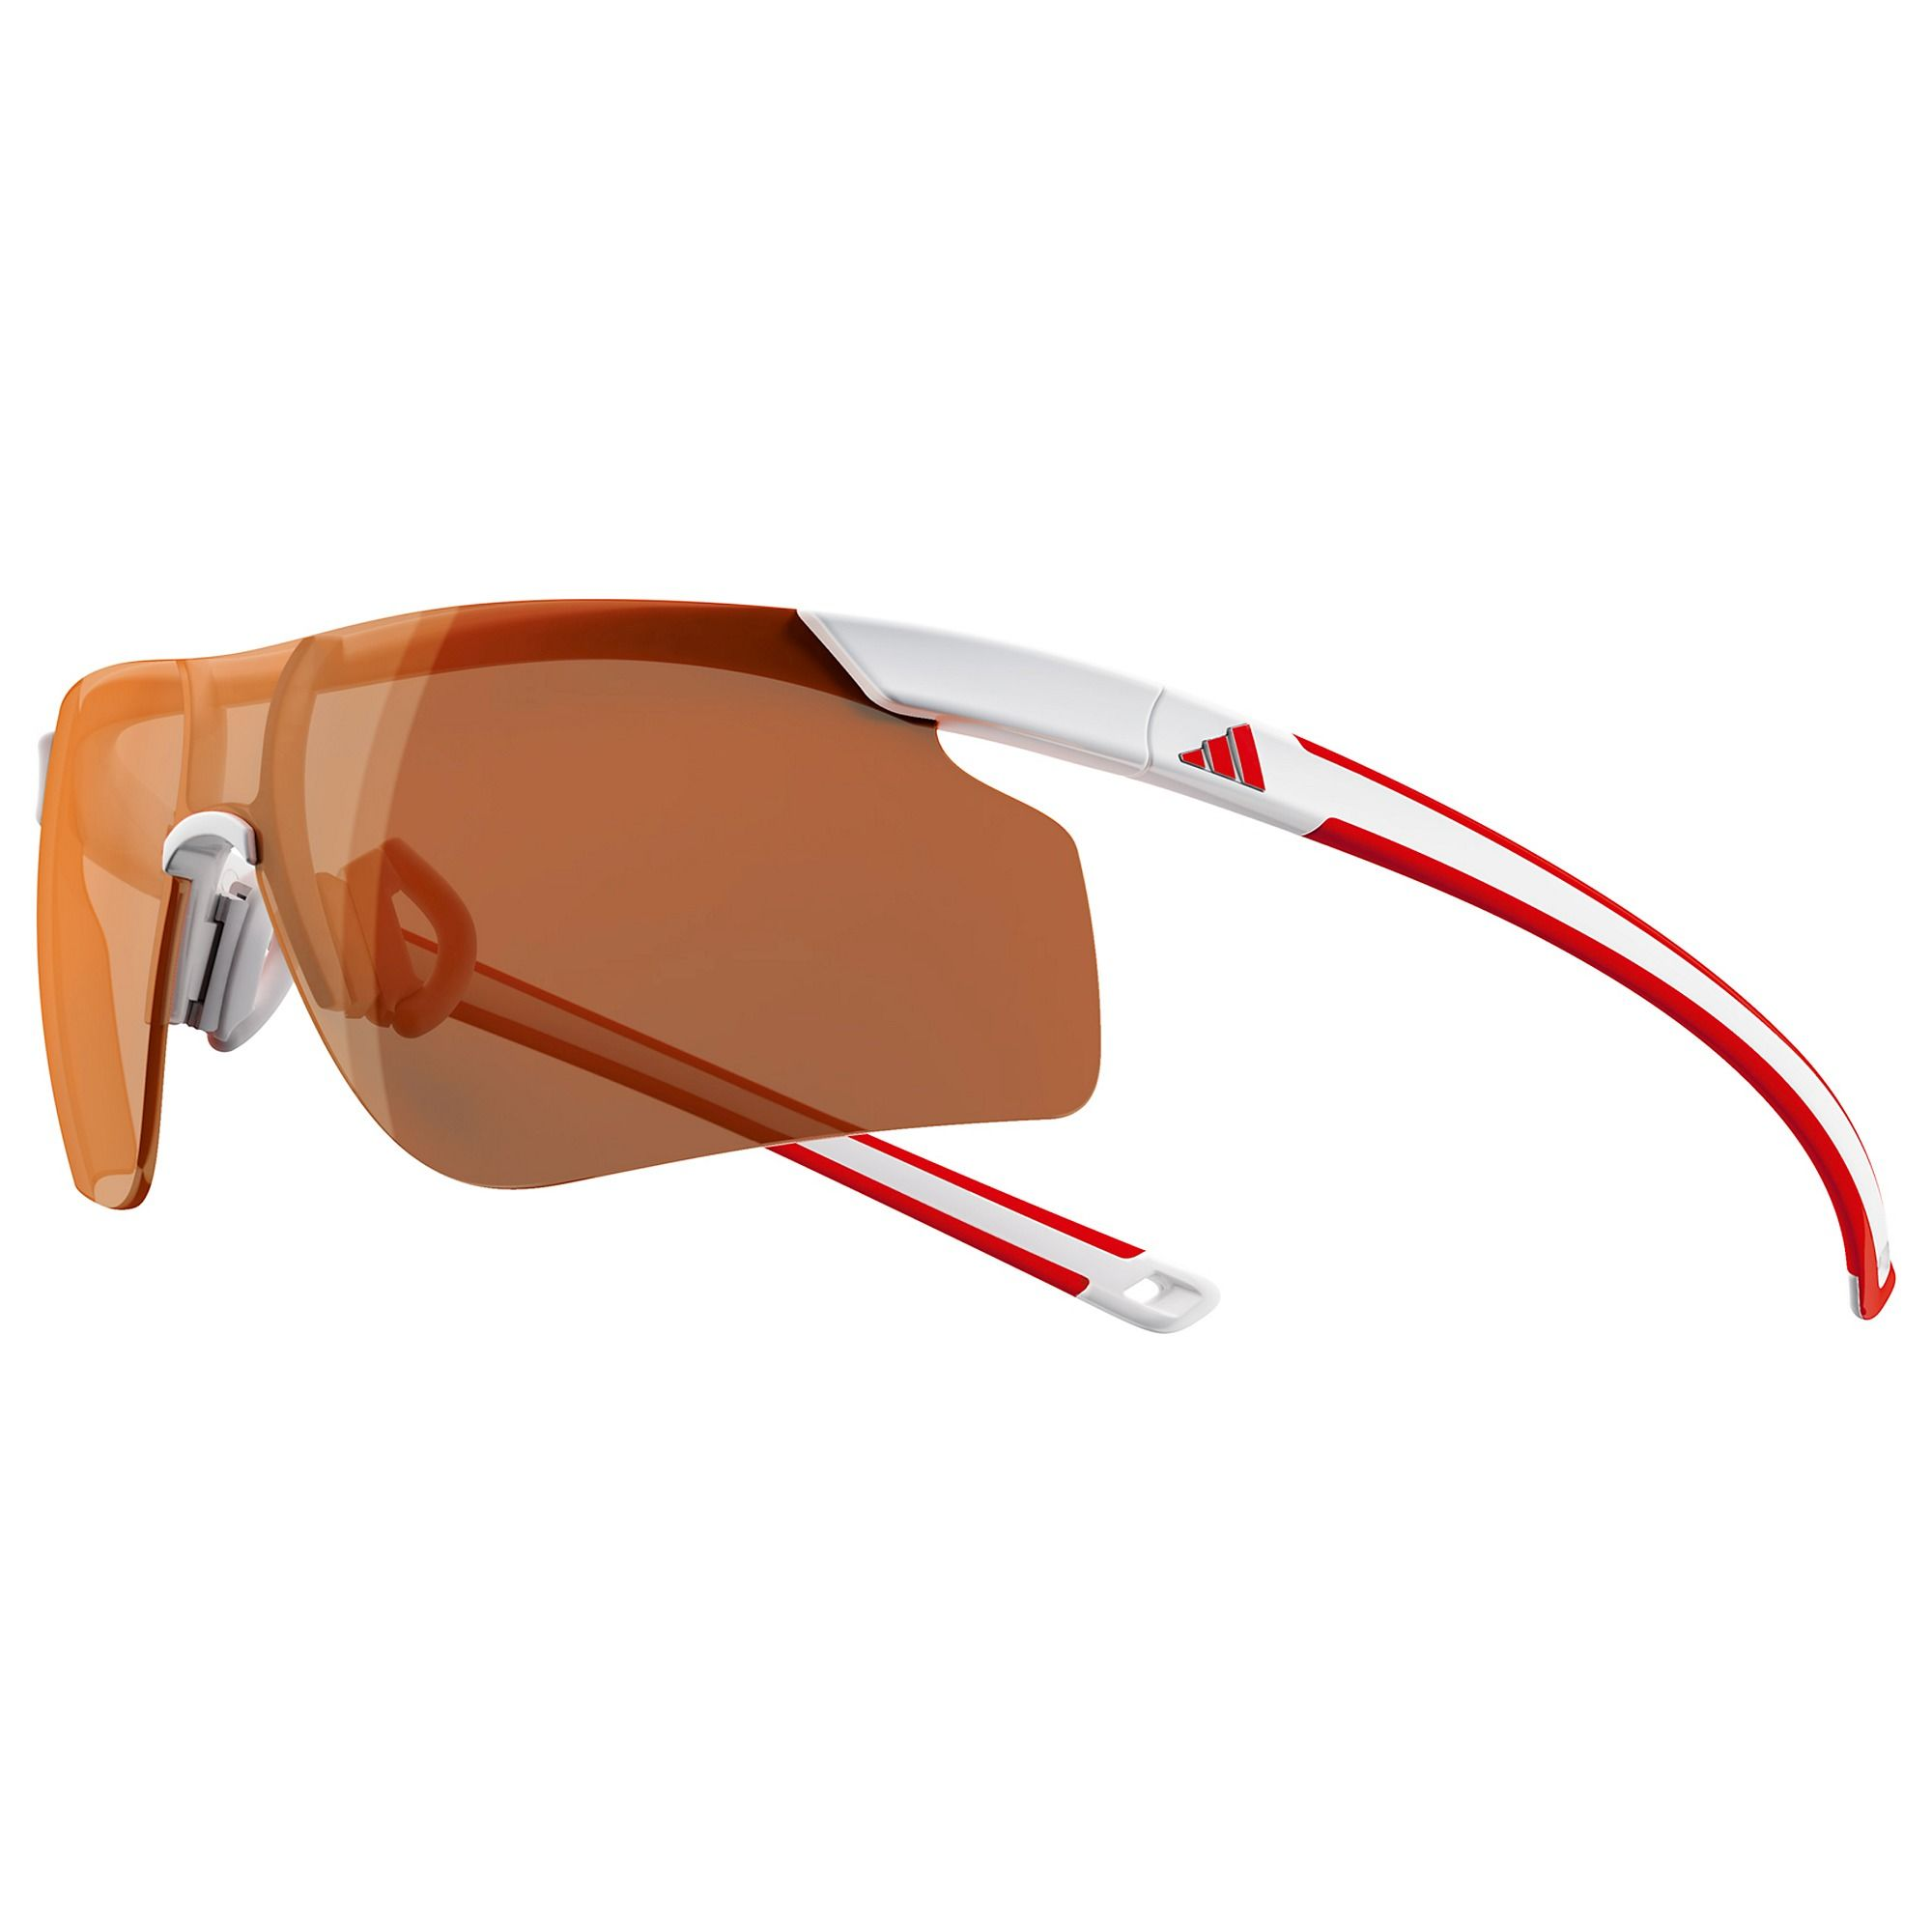 009699faaf The Adidas  Adizero Tempo sport glasses not only look the part